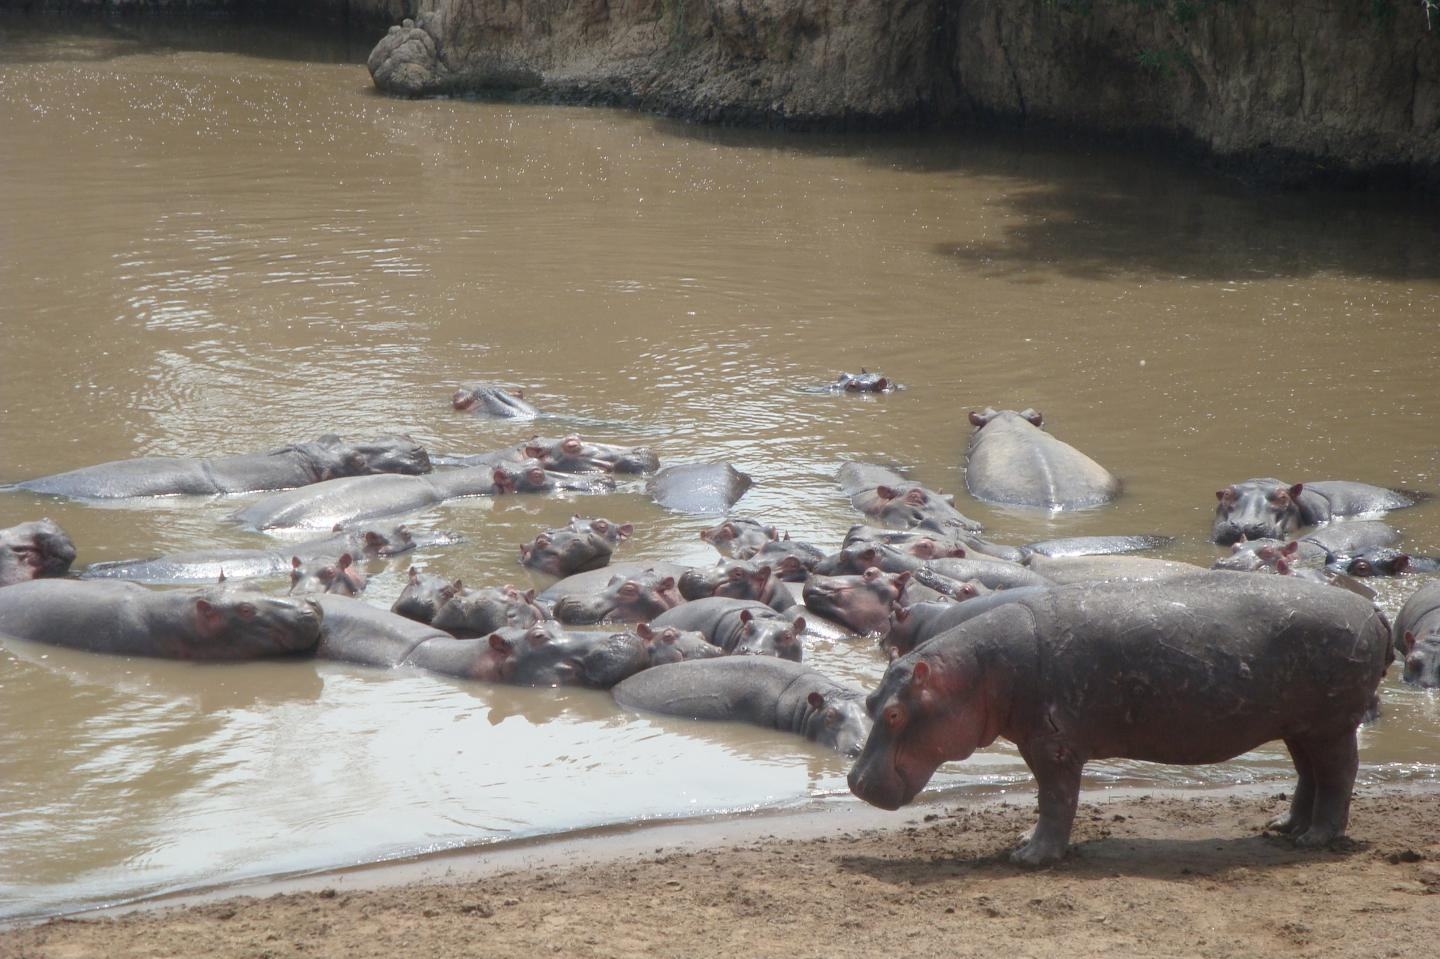 Hippos Lazing Away the Day Together